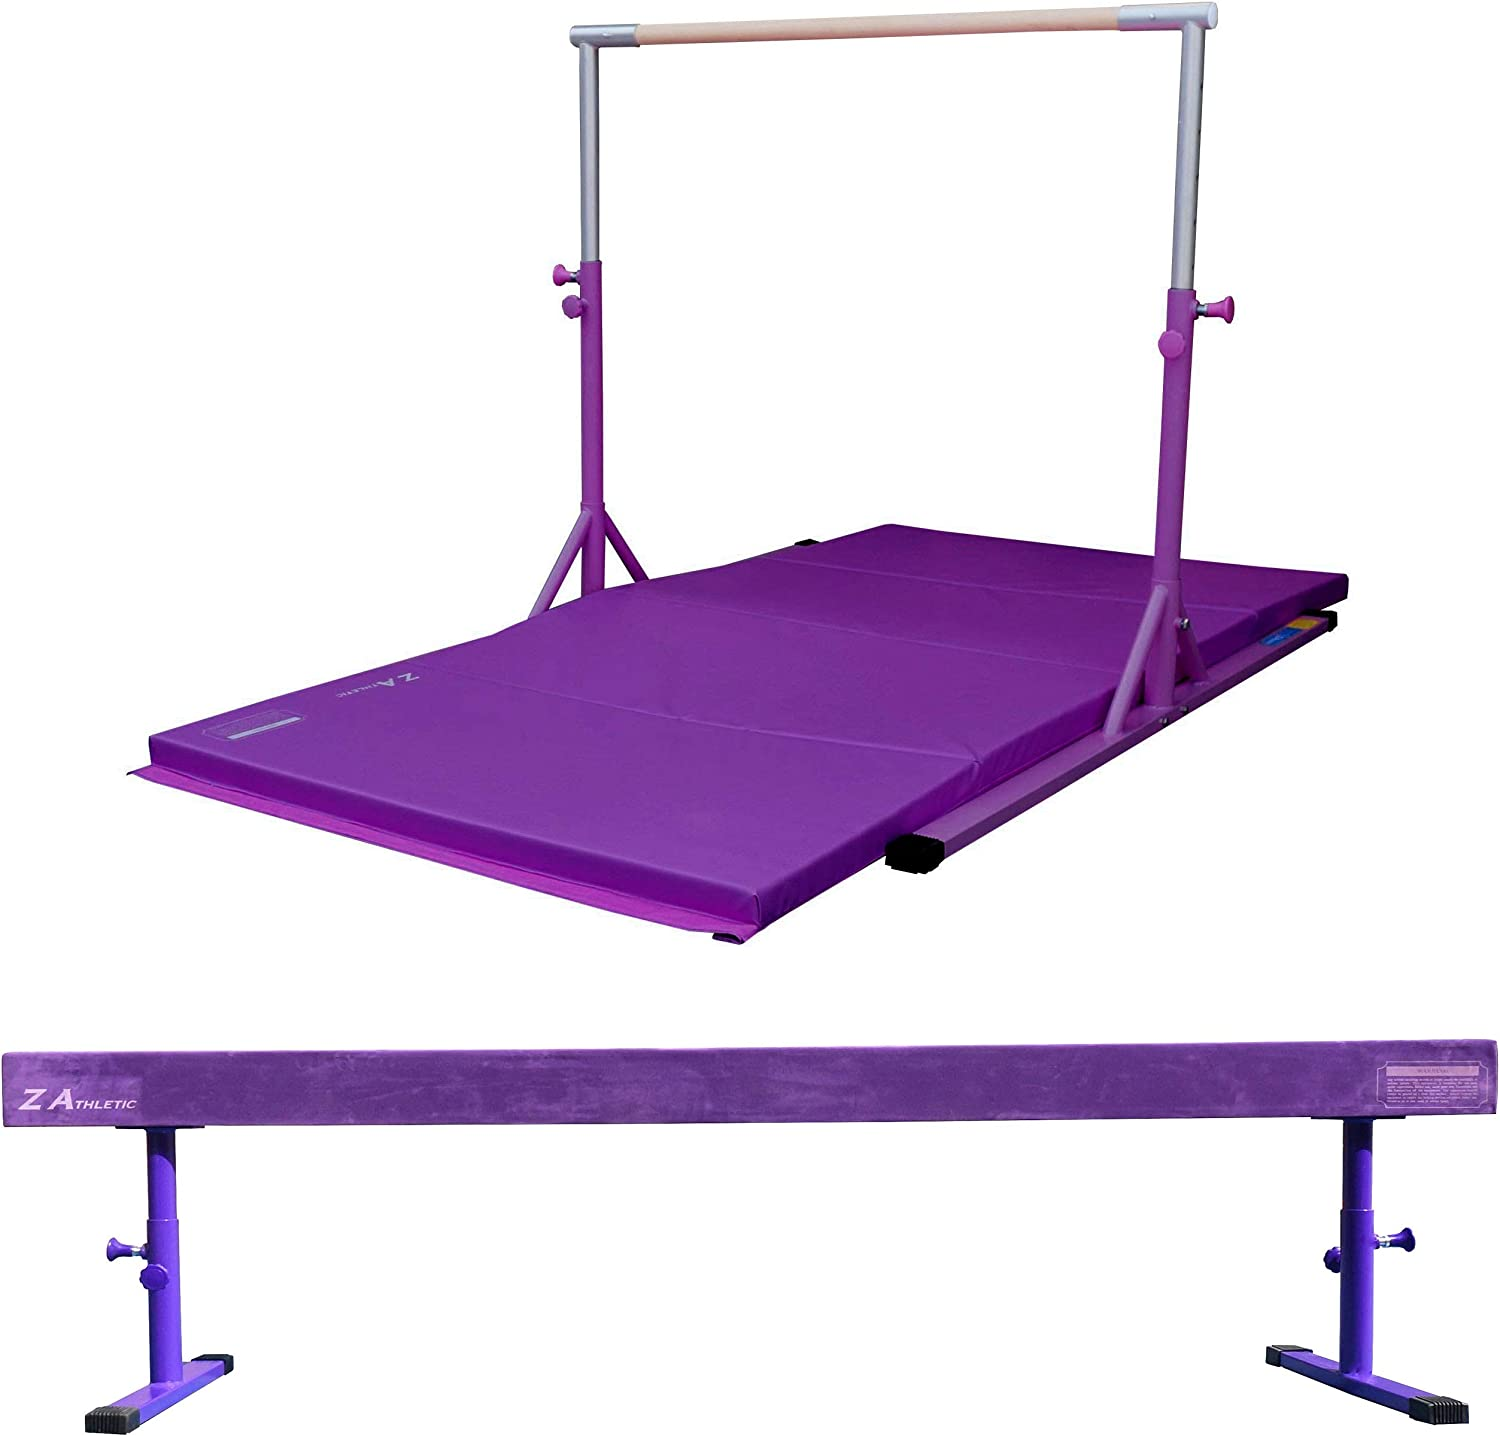 and Off Ground Balance Beam for In Home Gymnastics in Multiple Colors and Sizes Z Athletic Elite Training Bar 4ft x 8ft x 2in Gym Mat